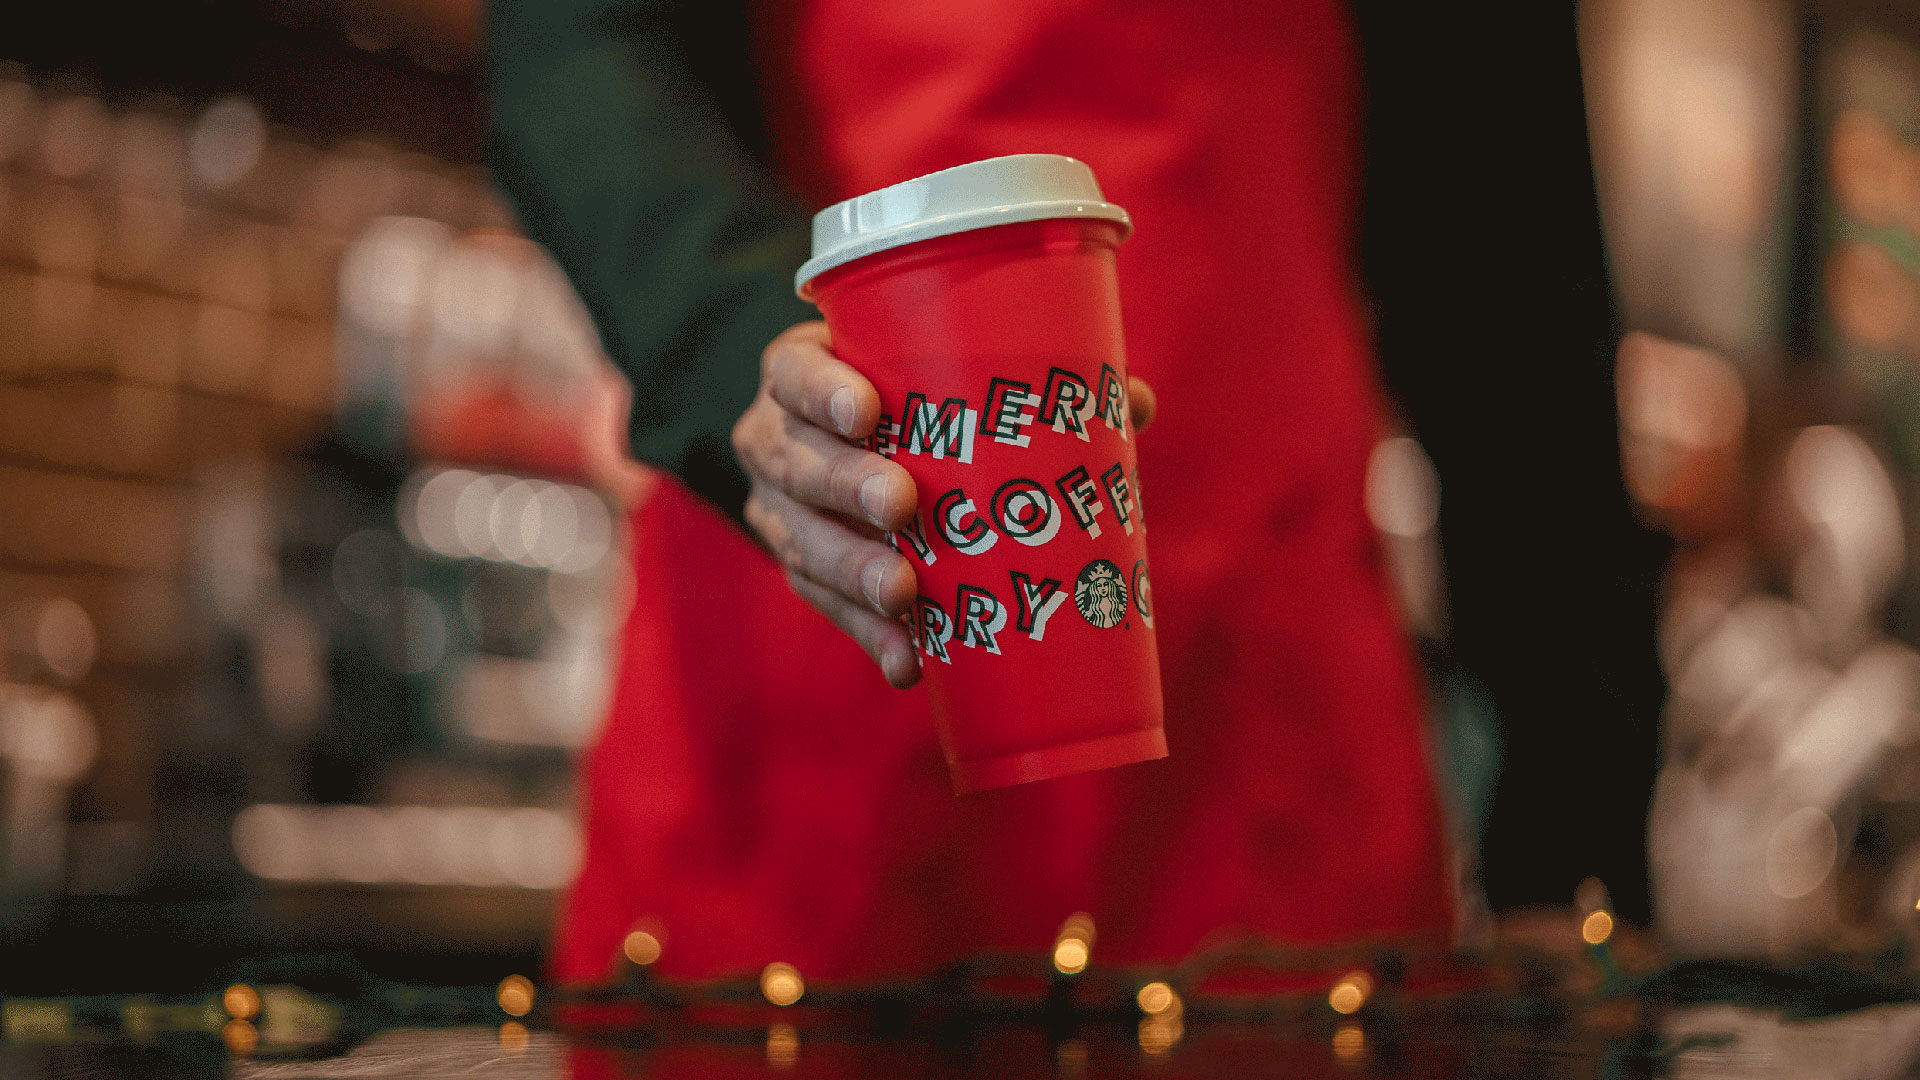 A 2019 holiday coffee cup is seen in this image from Starbucks.